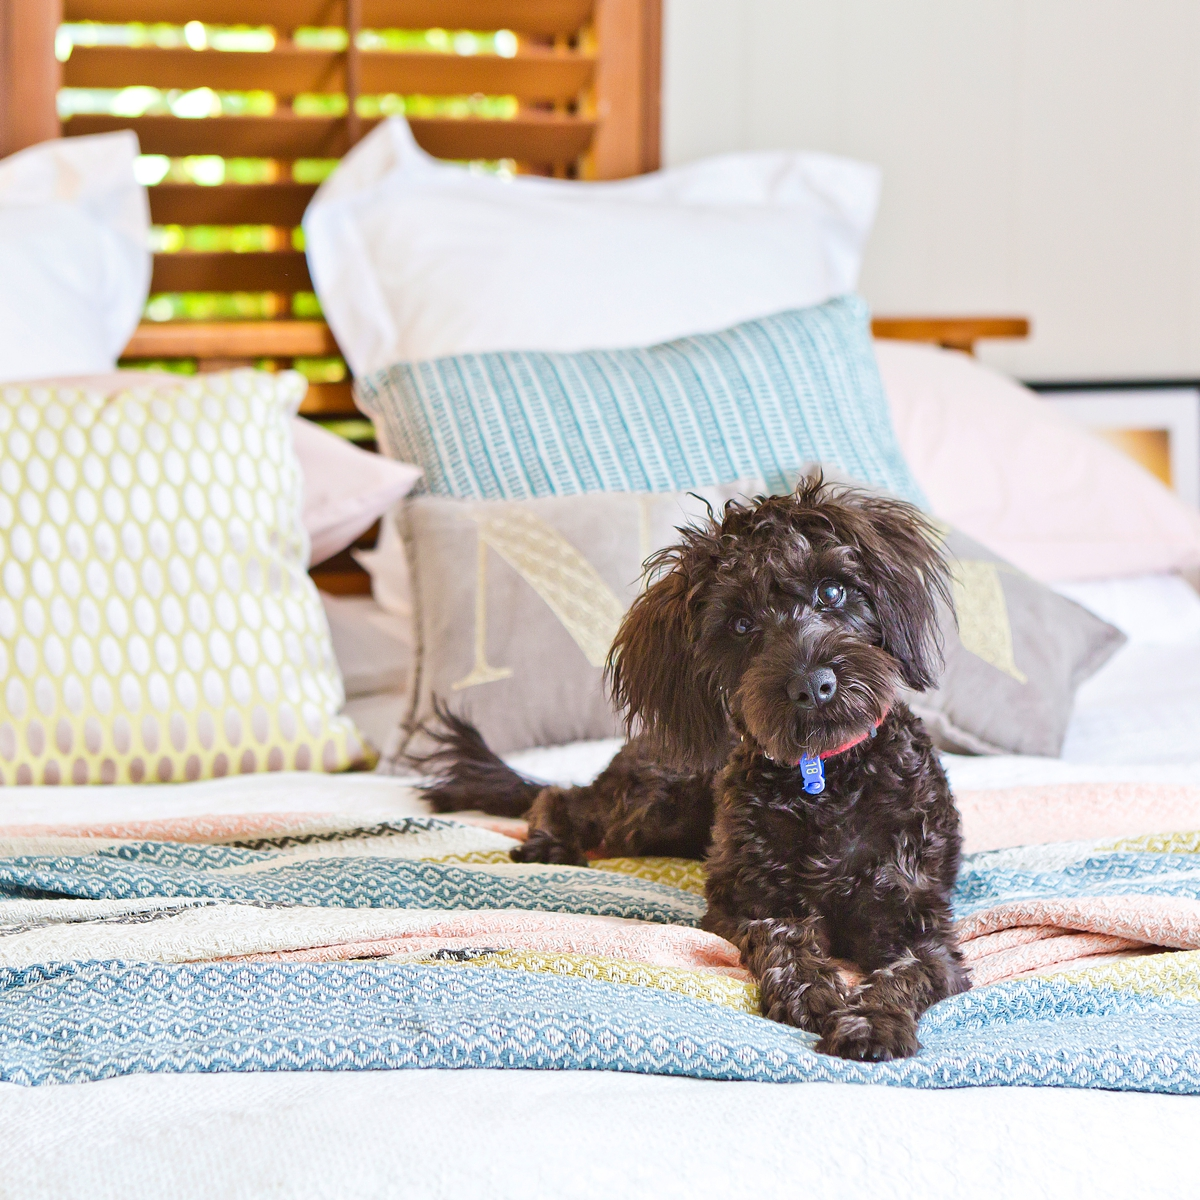 8 tips for styling your bed for an awesome Clean Sheet Day | Marks & Spencer (Australia)